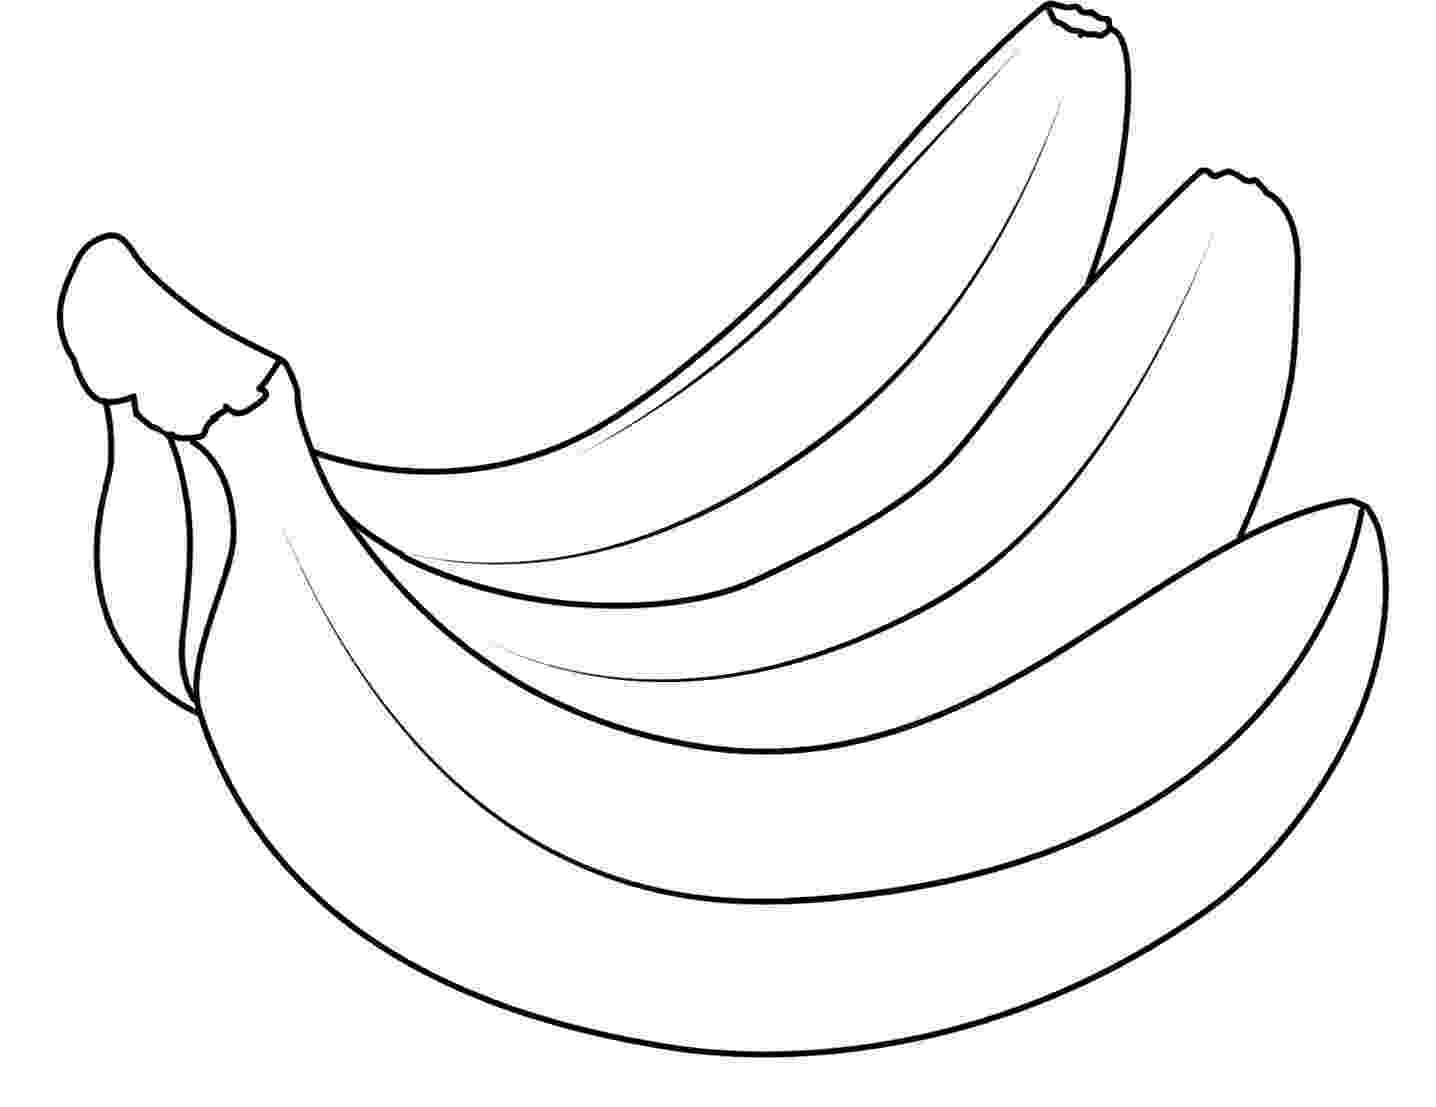 picture of banana for colouring apples and bananas coloring pages download and print for free banana picture of for colouring